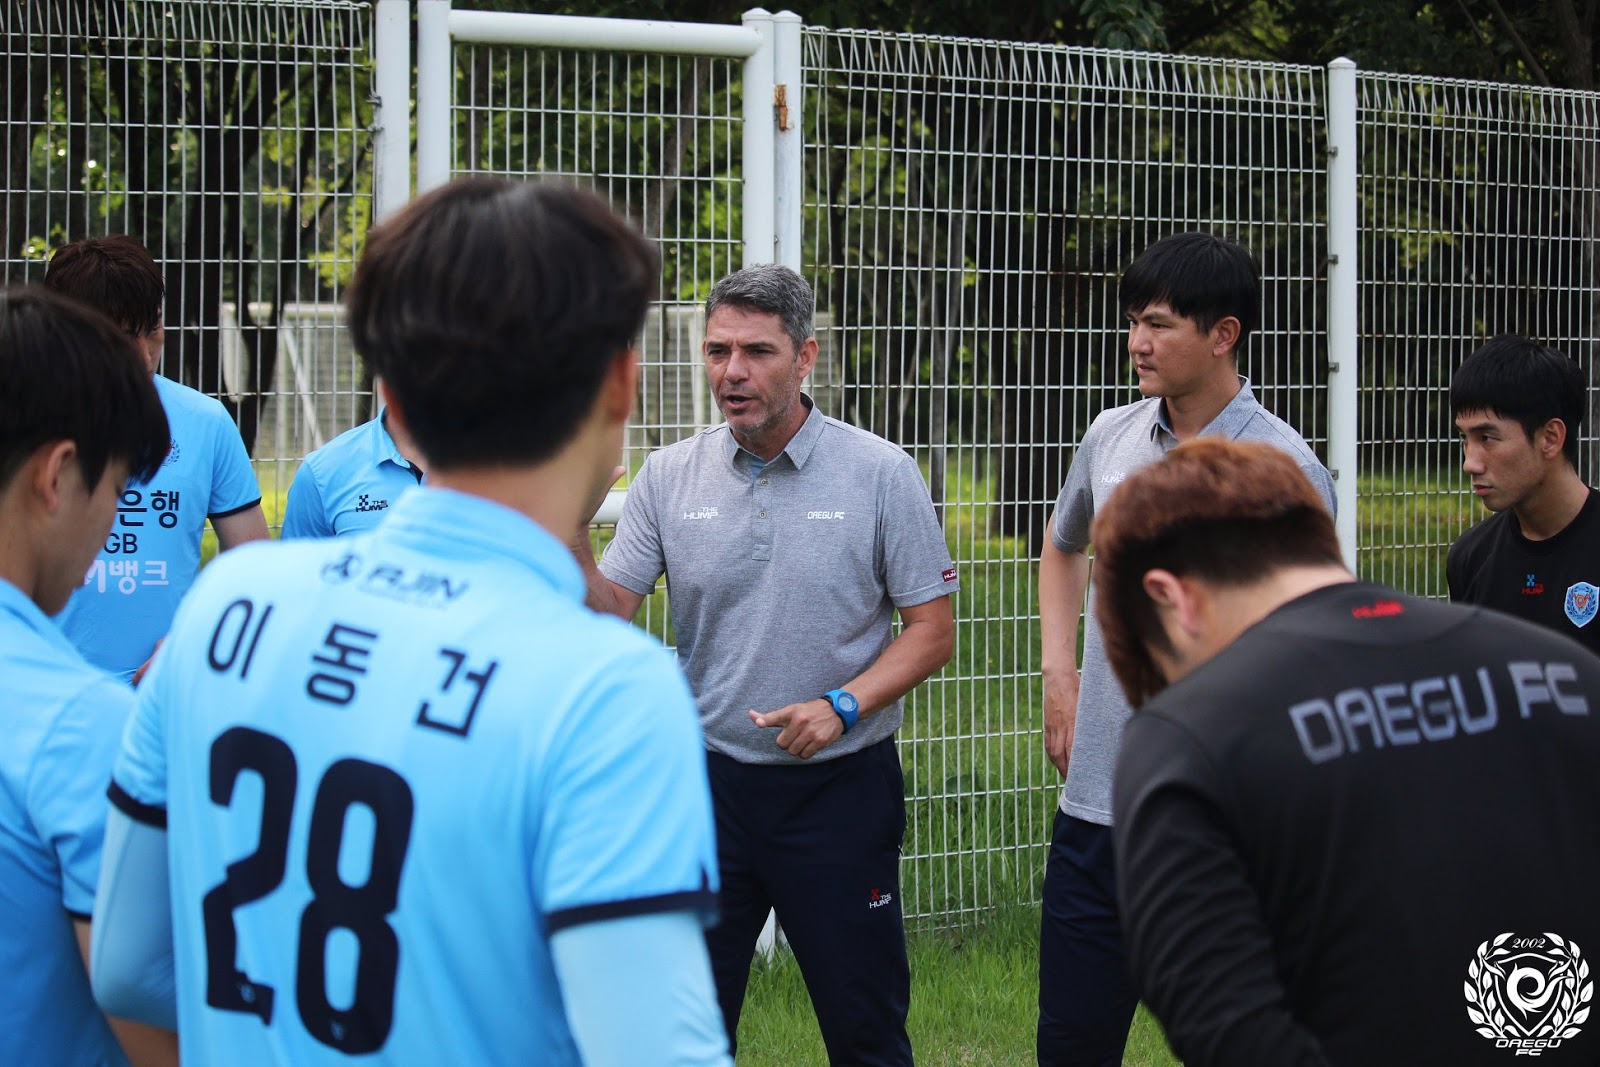 Interview: Daegu FC Reserve Team Manager Luis Manuel Hernandez